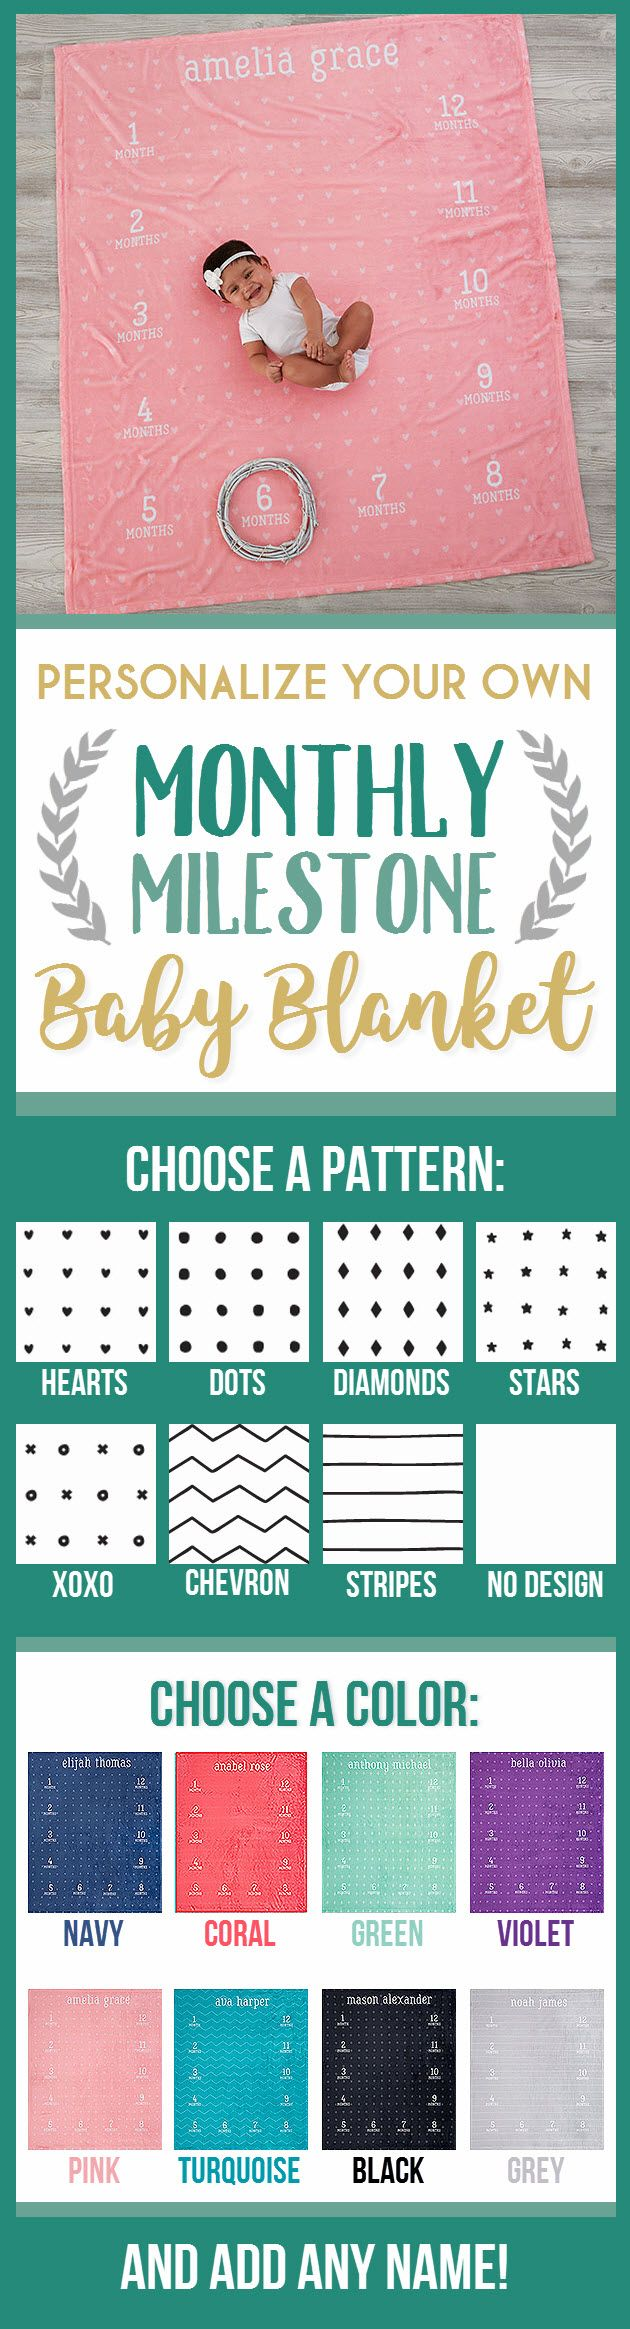 This personalized monthly milestone baby blanket is the perfect prop for those monthly baby photos! Such a great baby gift idea too!